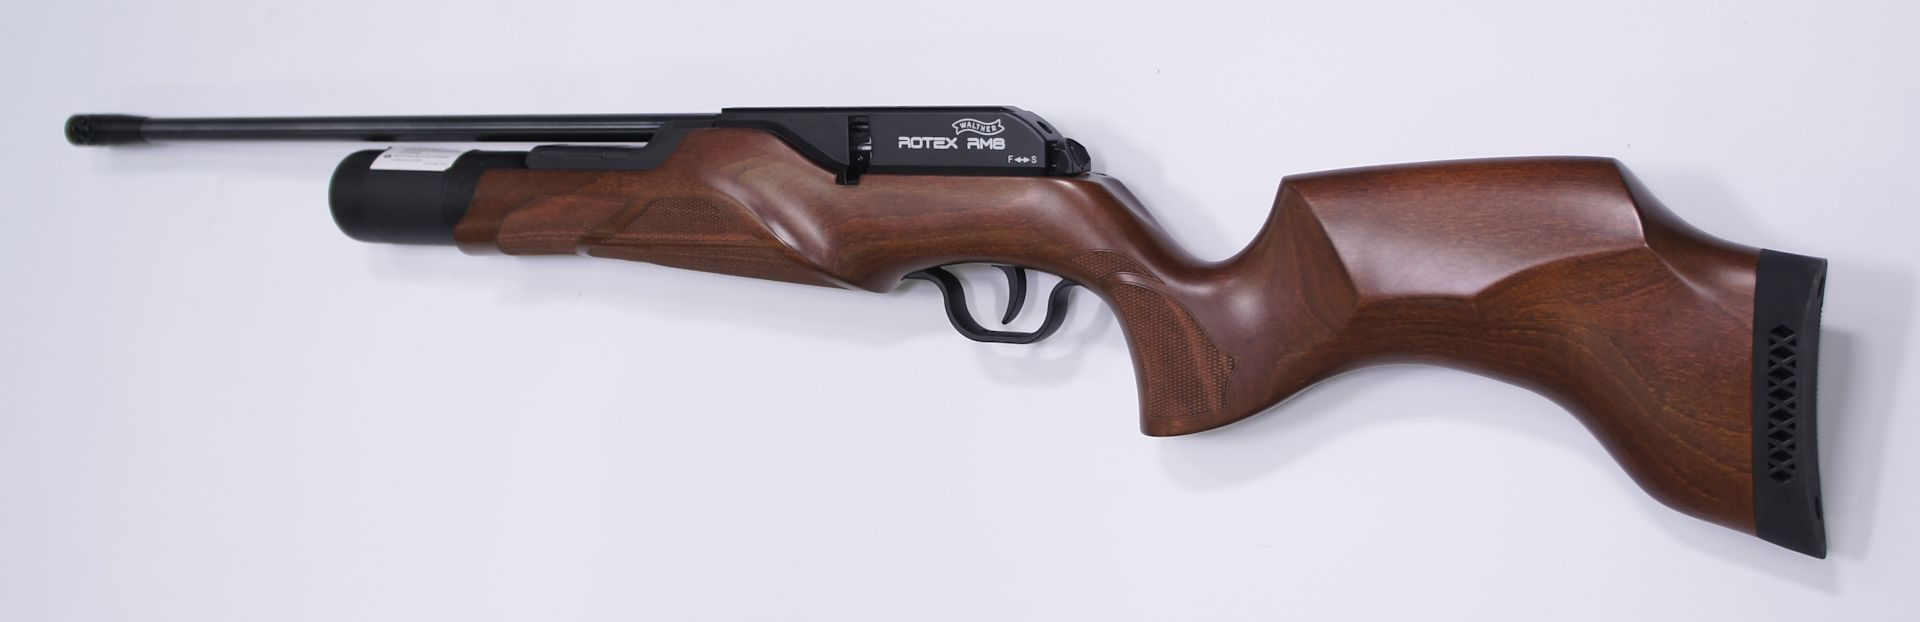 PCP Luftgewehr Walther Rotex RM8, Kaliber  4,5mm